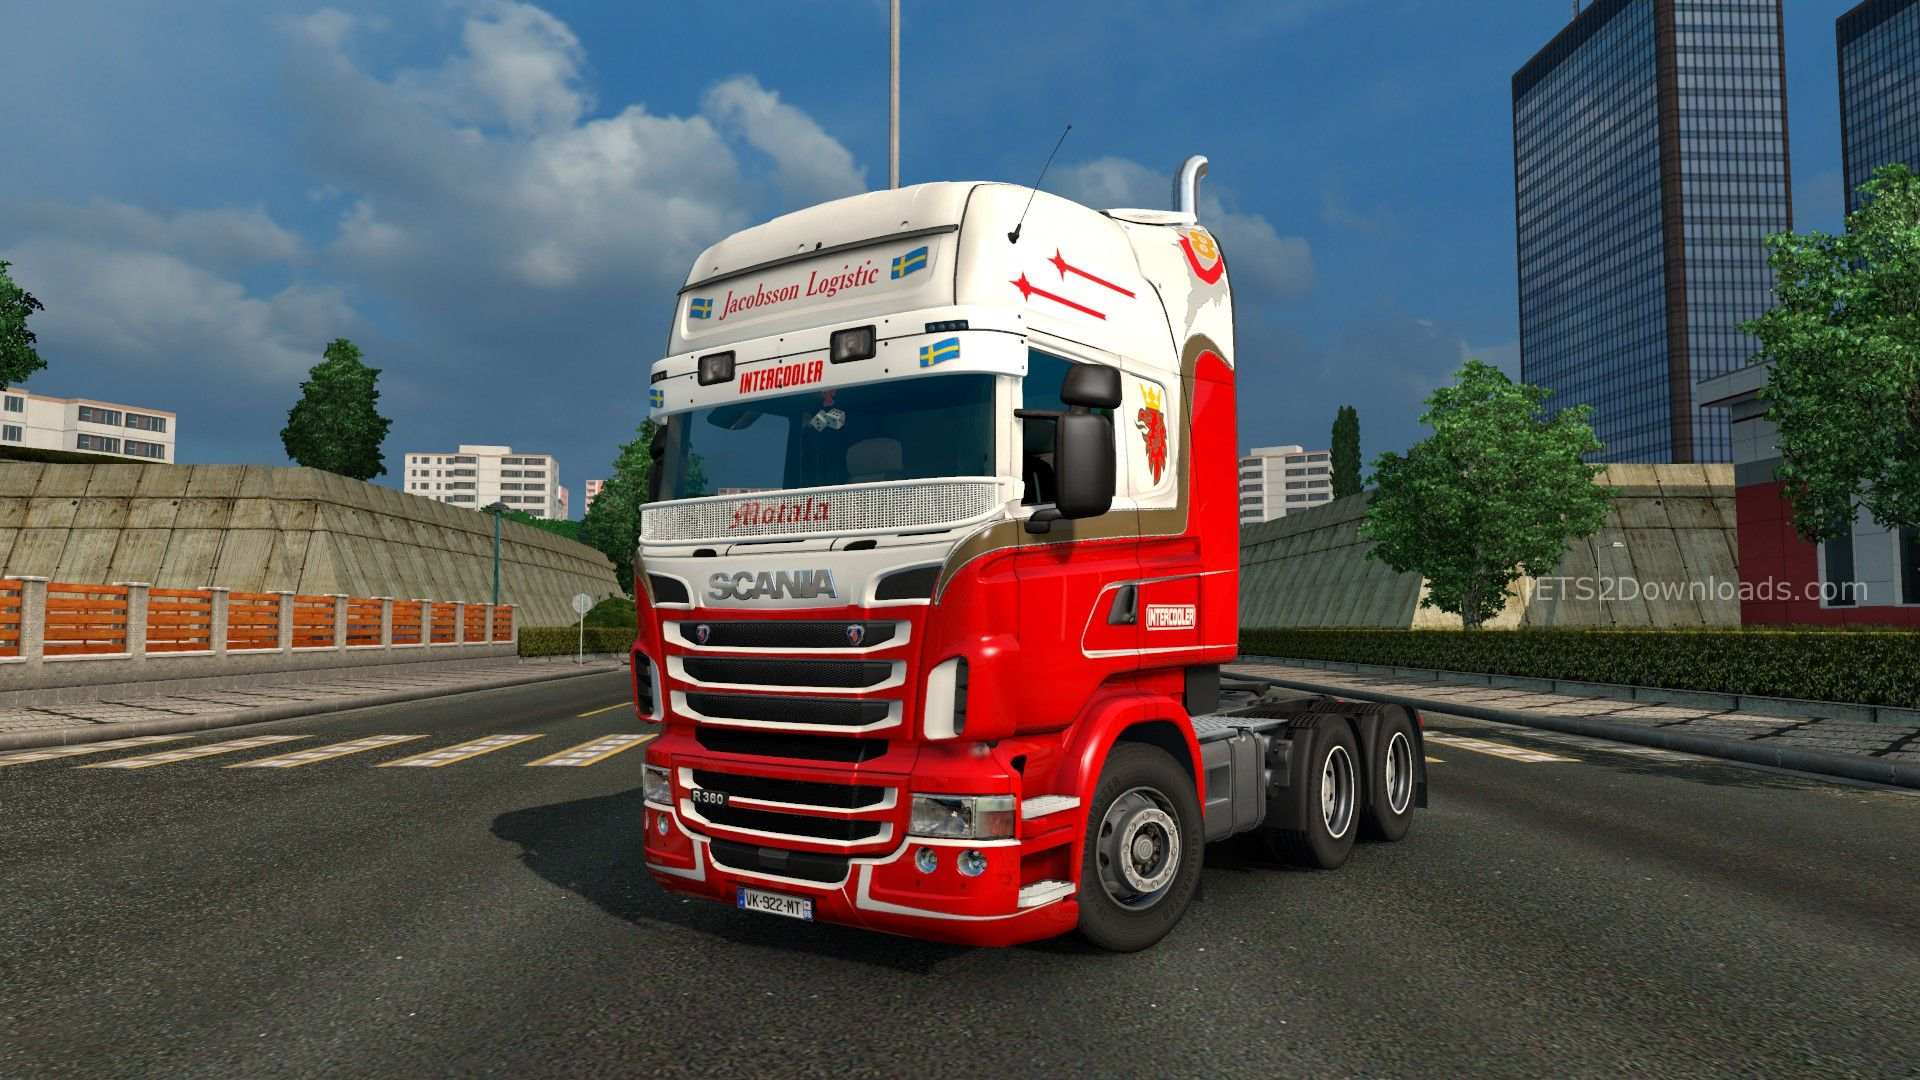 jacobsson-logistic-skin-for-scania-rjl